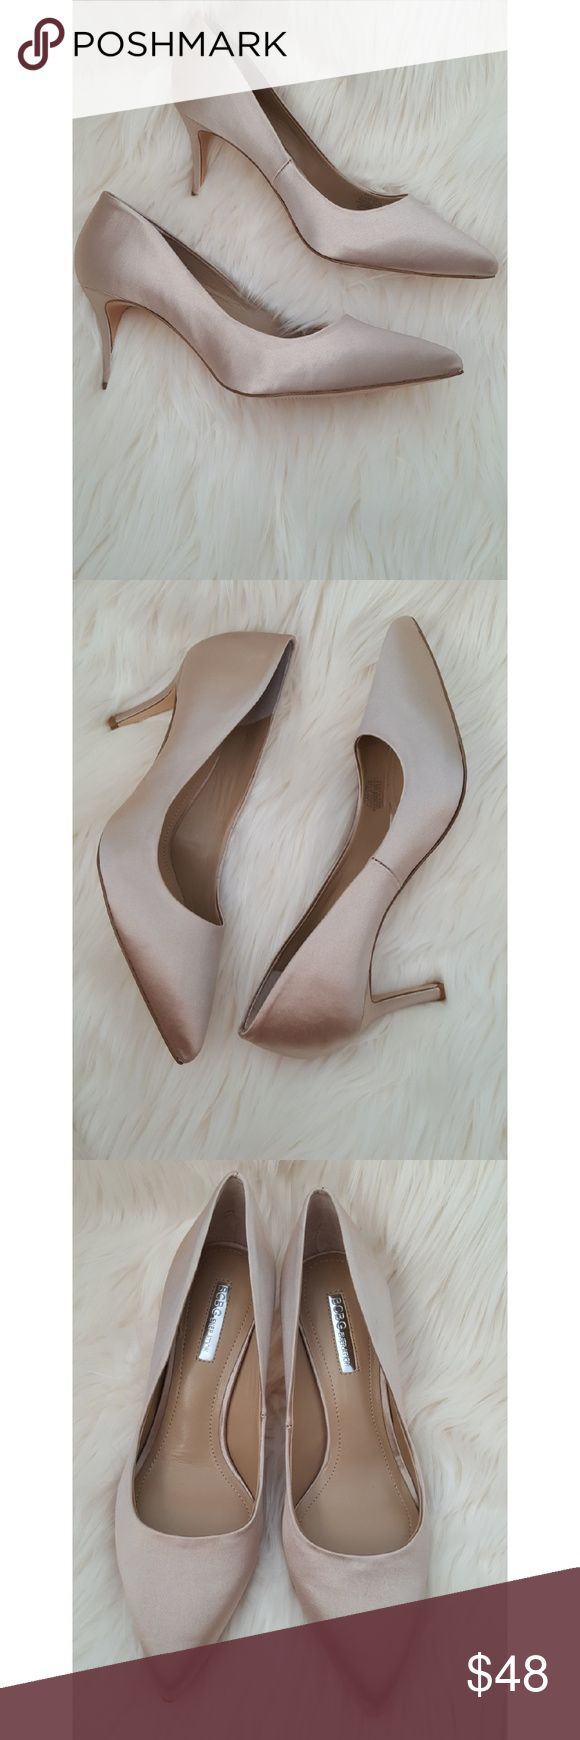 """BCBG GENERATION Matte Satin Pumps Heels BCBG GENERATION Matte Satin Pumps Heels   Color: Champagne Size: 7.5M Heel height: Approx. 3""""  Item is New with Box. Please look through all photos before purchasing item.   Thank you for looking check out my other items!! BCBGeneration Shoes Heels"""